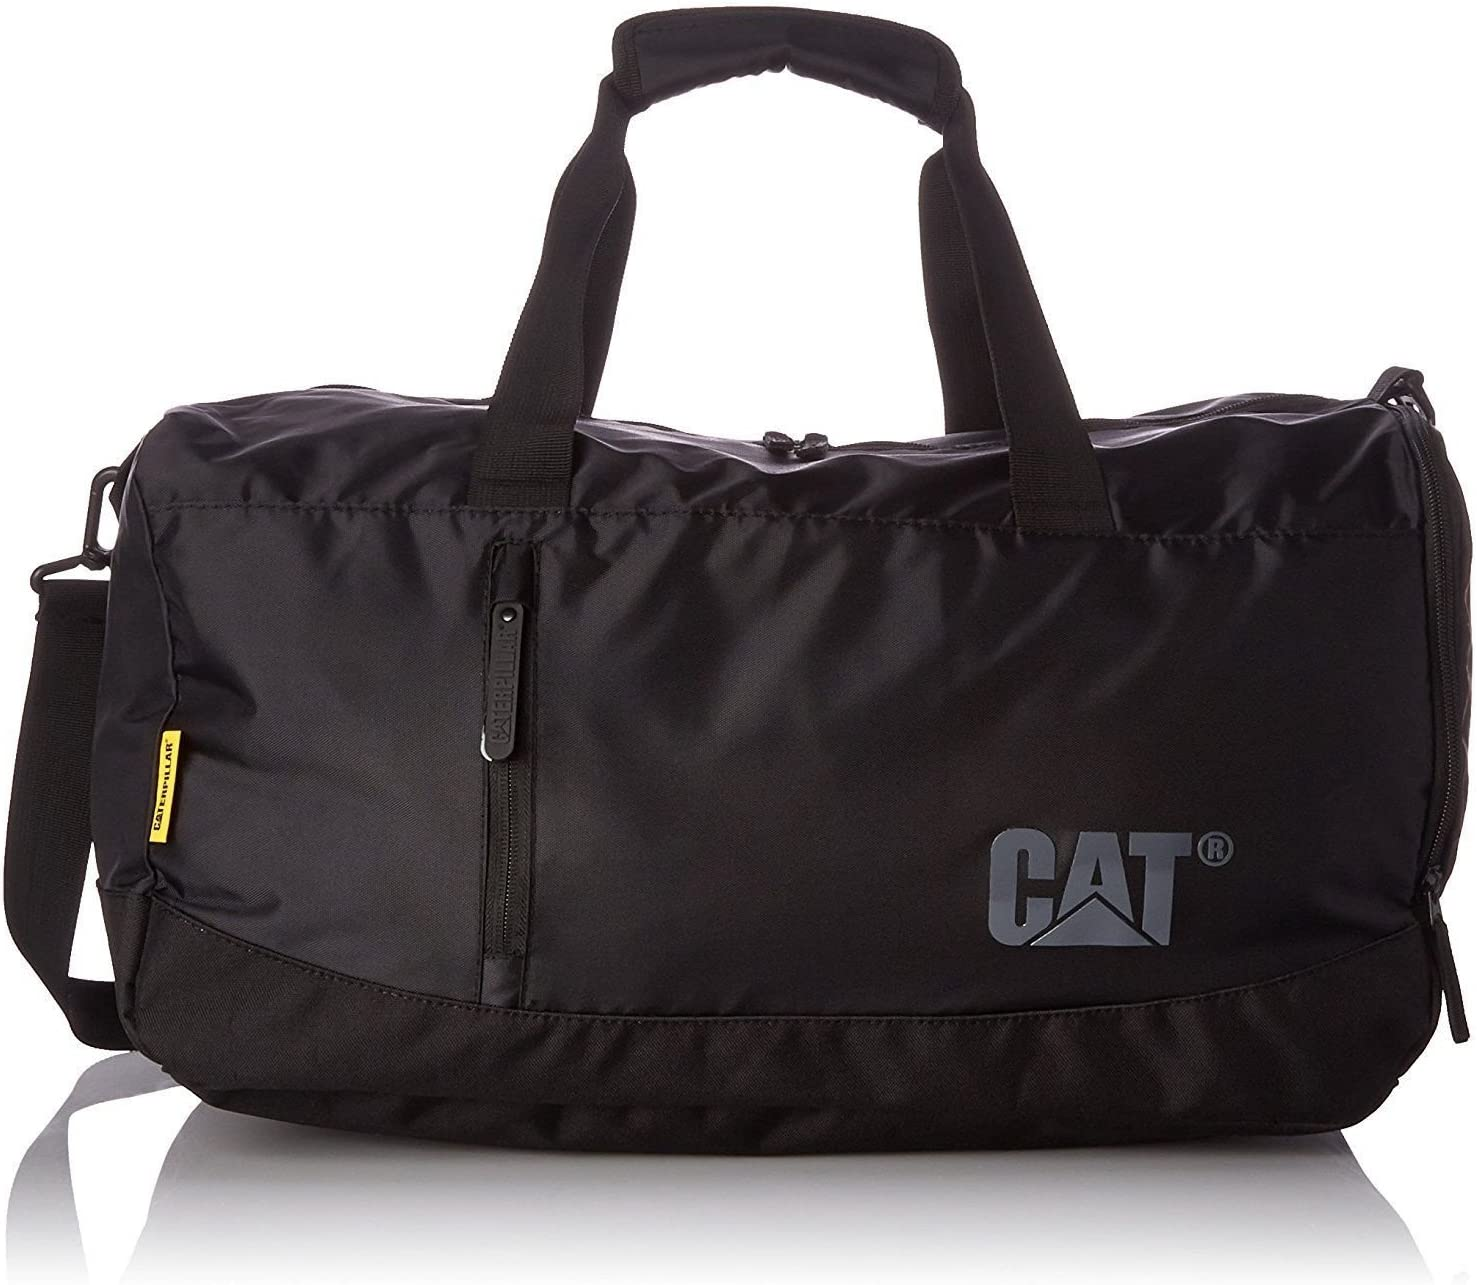 Black Silhouette Of Cat With Foot Track Weekender Bag Travel Duffel Bag for Weekend Overnight Trip